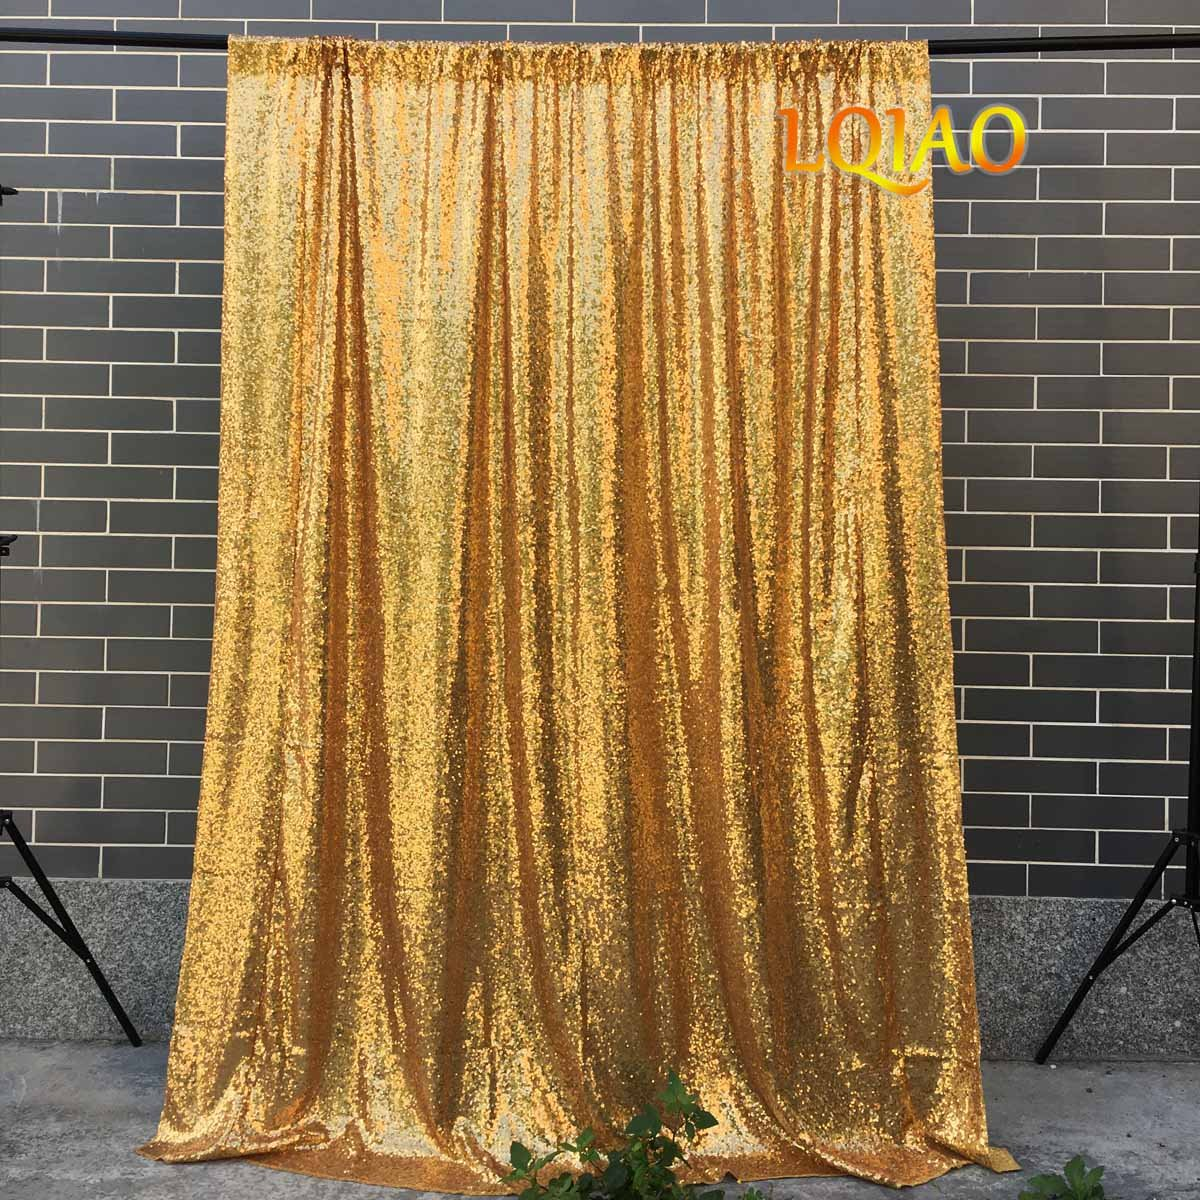 LQIAO 4FTX10FT Gold Shimmer Sequin Fabric Backdrops Wedding Photo Booth,Sequin Curtains,Drapes,Sequin Panels Photography Background Decoration by LQIAO